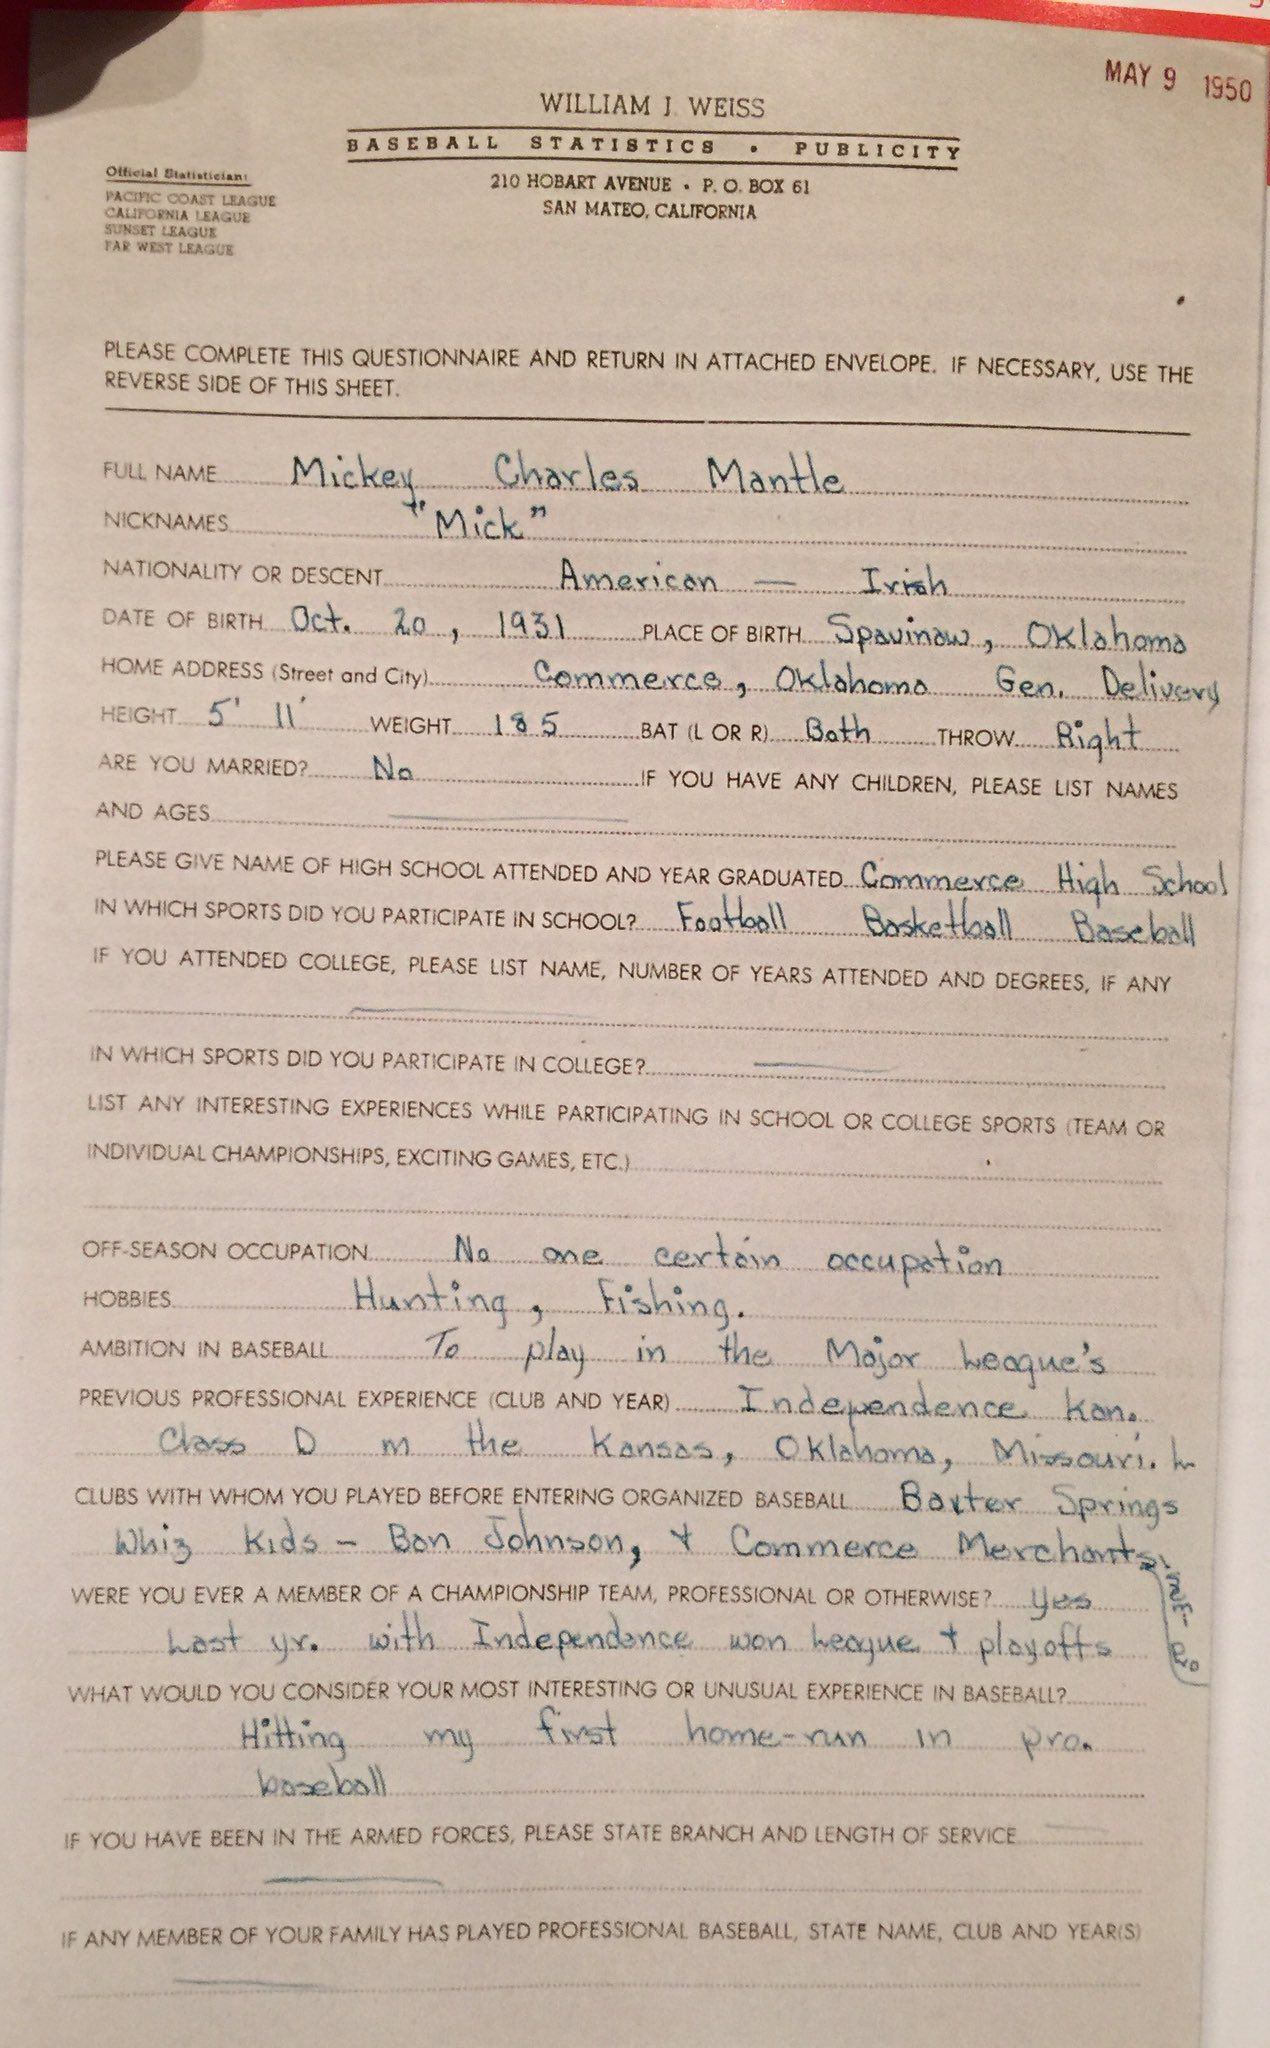 Minor league questionnaire filled out by Mickey Mantle when he was